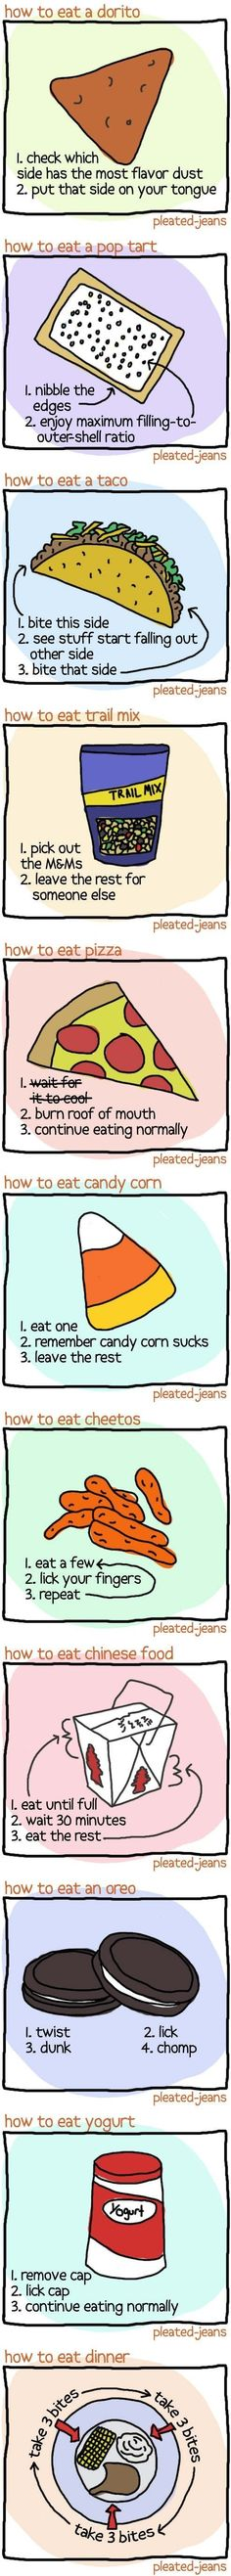 Candy corn gets me every year!!